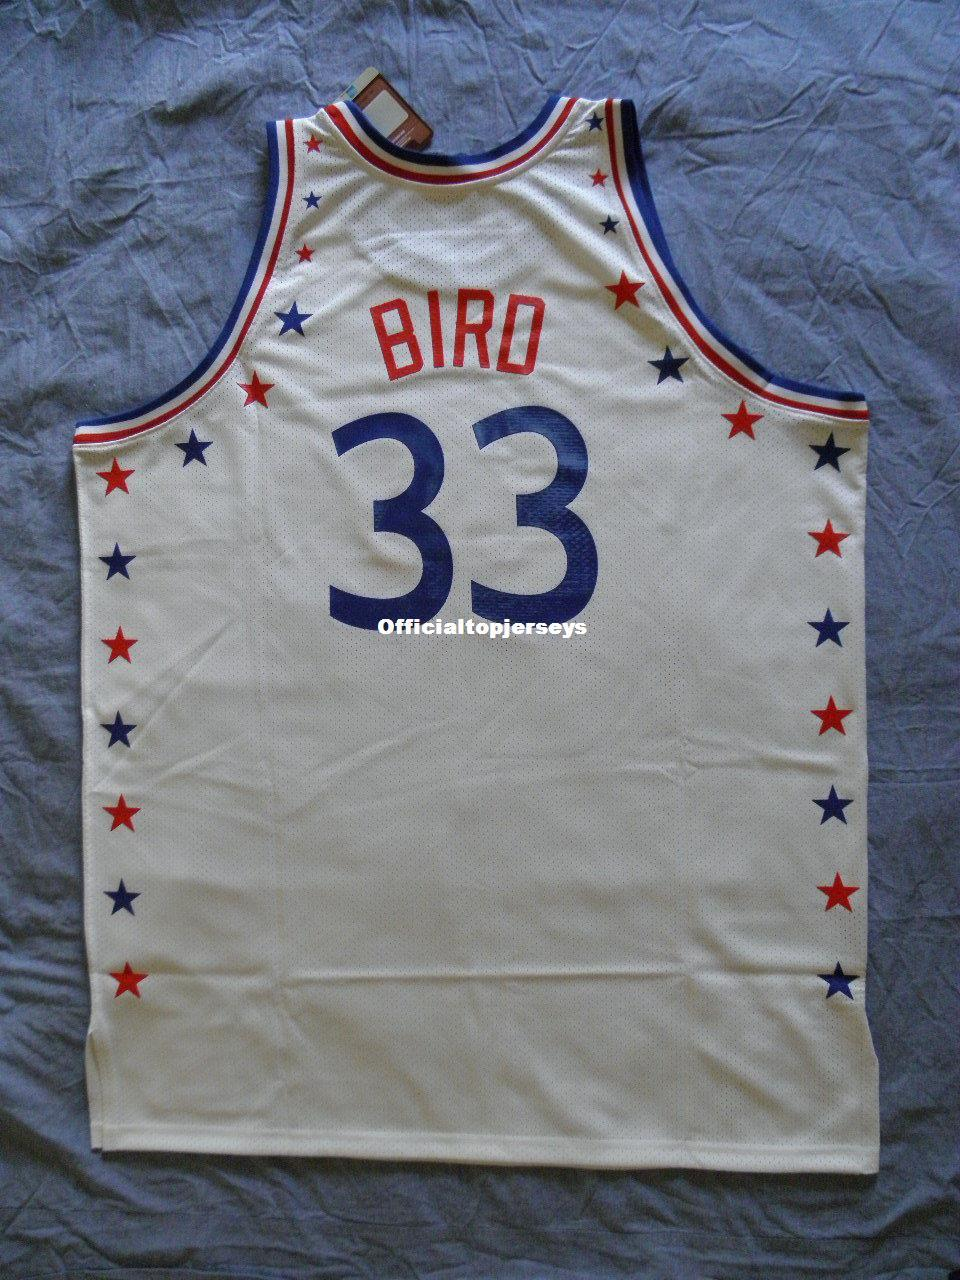 ef60360bfe4 2019 Cheap Mitchell Ness M&N Larry Bird #33 All Star Jersey NWT NEW Mens  Vest Size XS 6XL Stitched Basketball Jerseys Ncaa From Officialtopjerseys,  ...